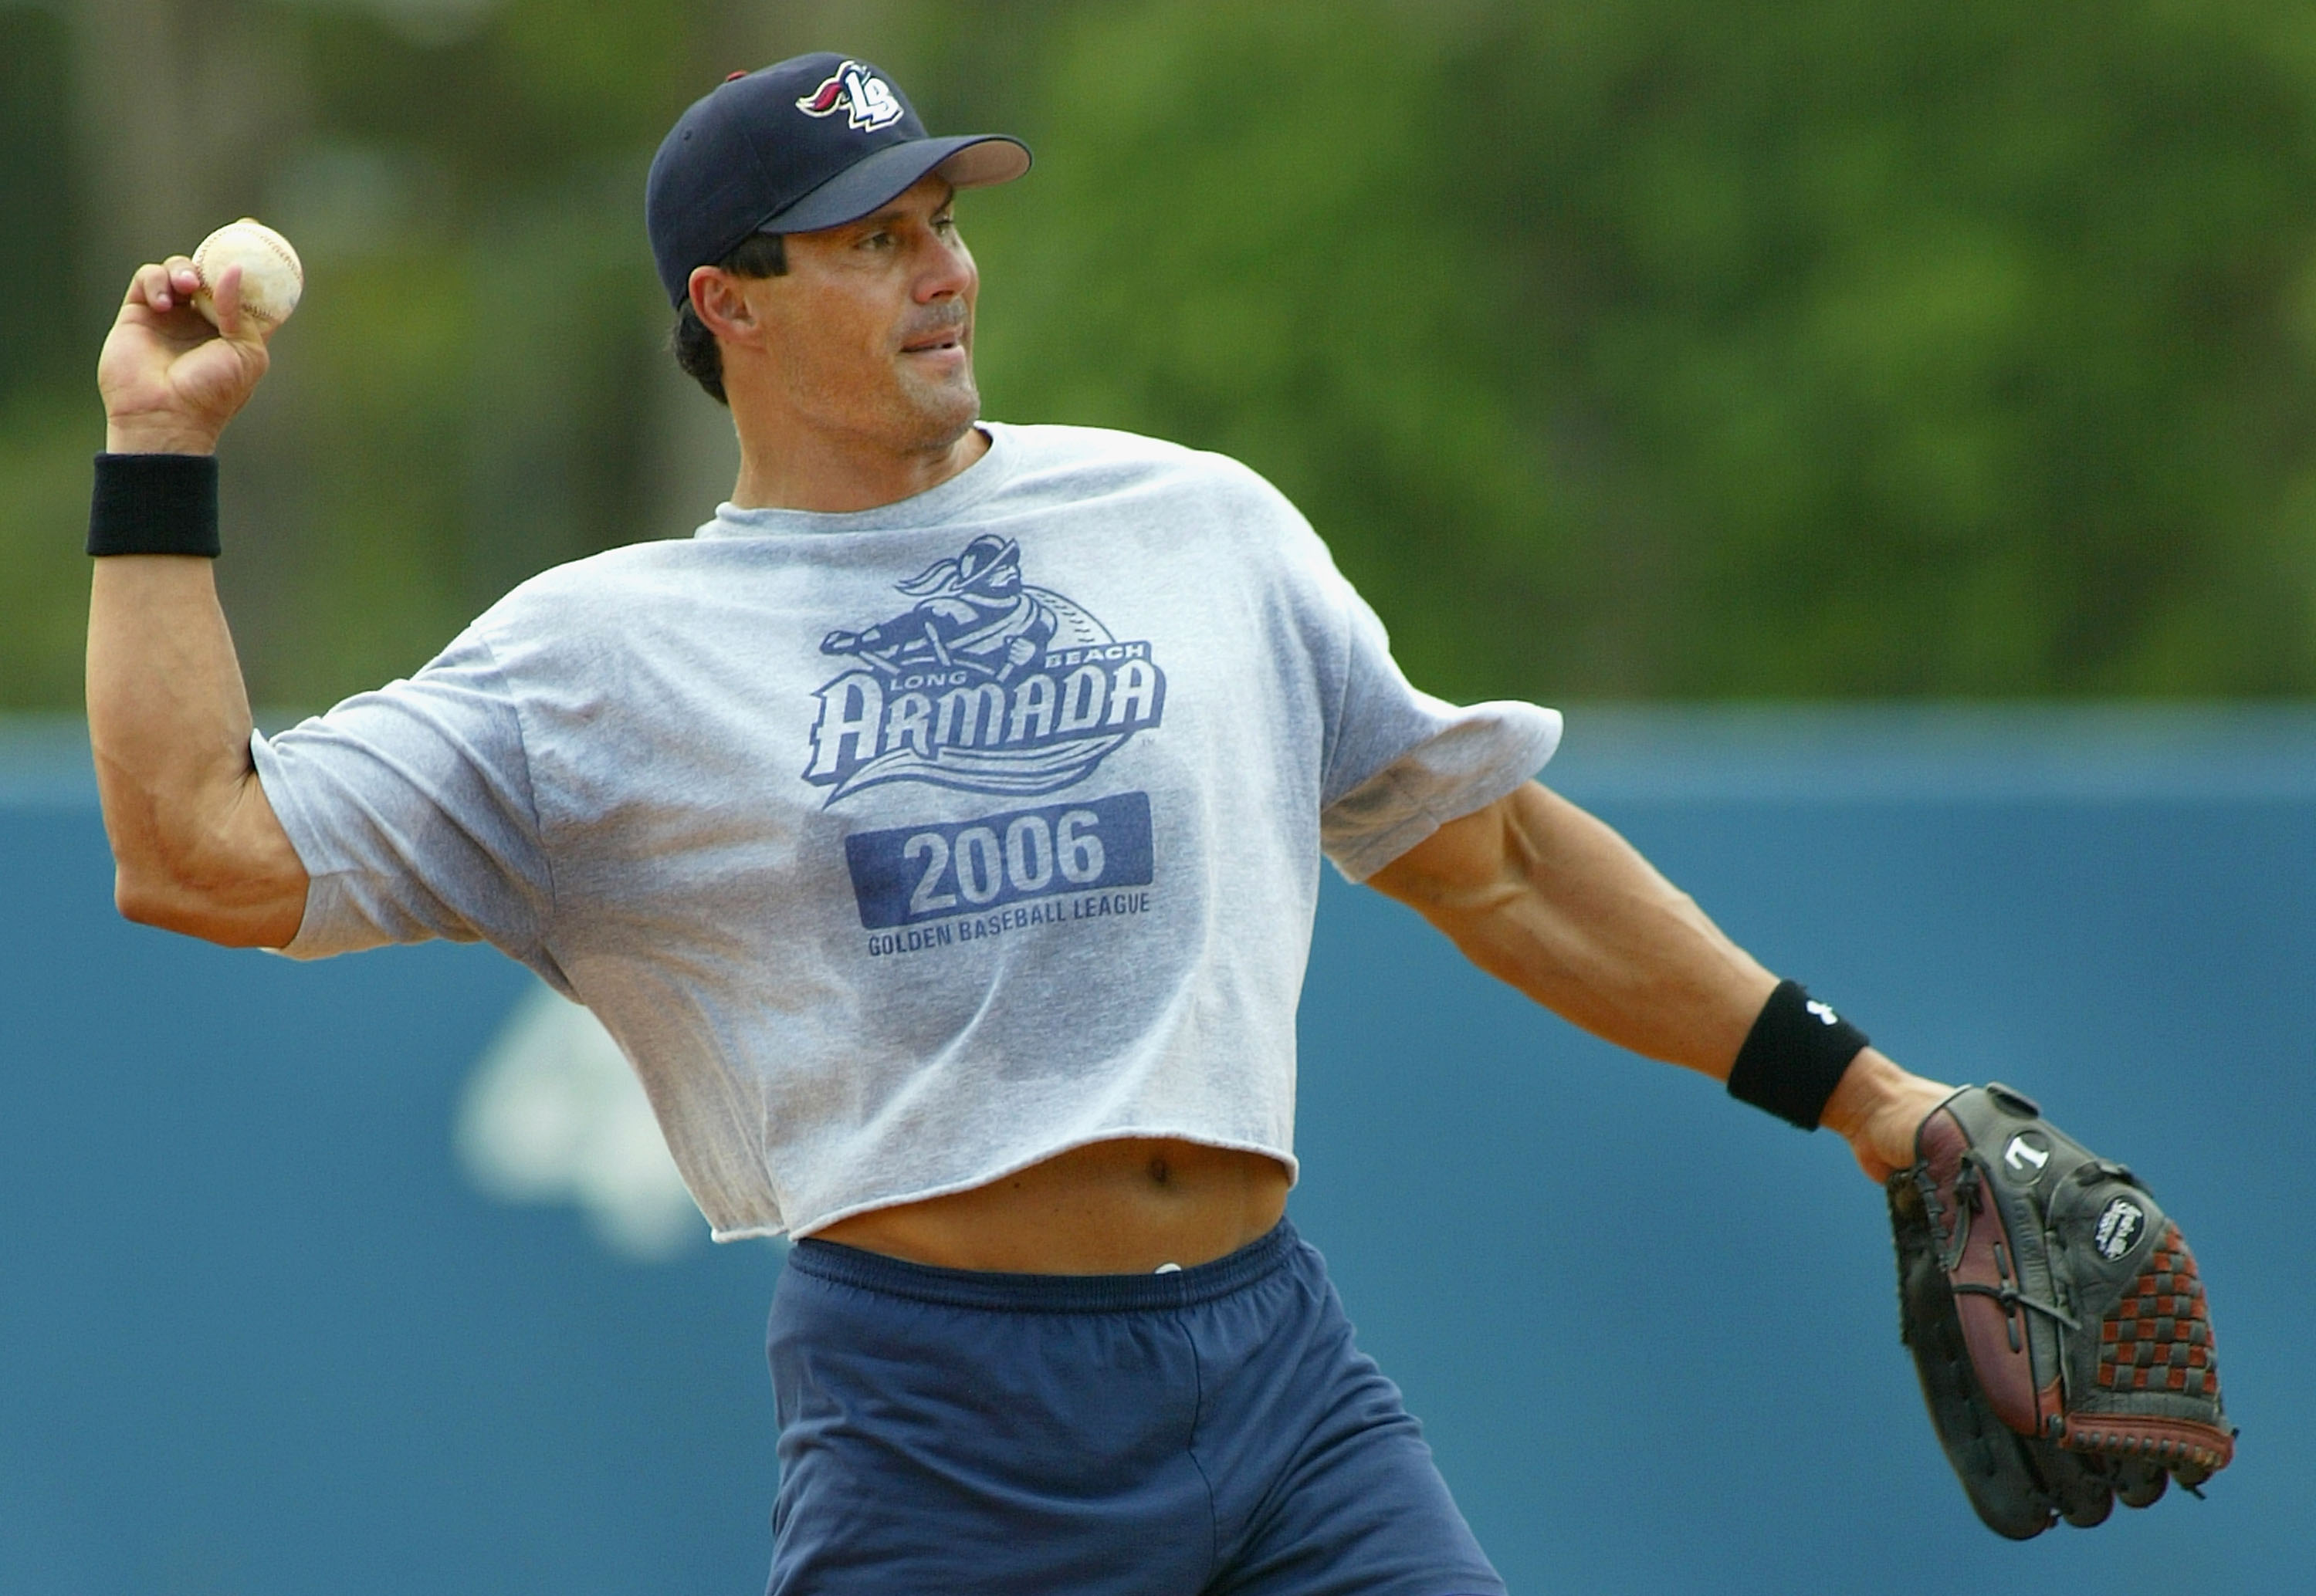 LONG BEACH, CA - JULY 16:  Jose Canseco #33 of the Long Beach Armada throws the ball in warm ups before the Golden Baseball League game against the Fullerton Flyers on July 16, 2006 at Blair Field in Long Beach, California.  (Photo By Christian Petersen/G